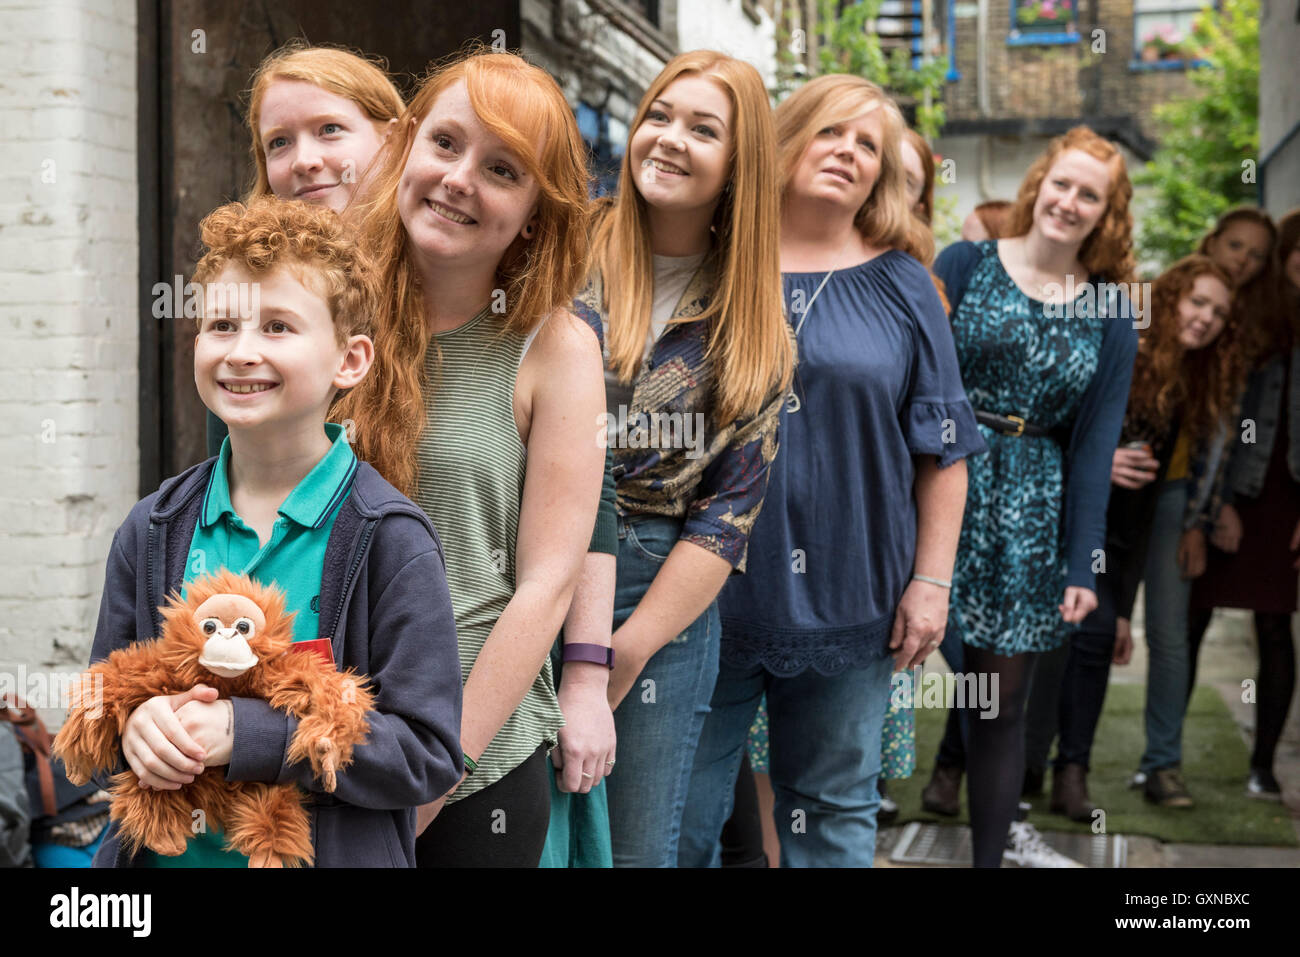 London, UK. 17th September, 2016.   A large group of ginger, auburn and redheaded people pose for a photograph in - Stock Image